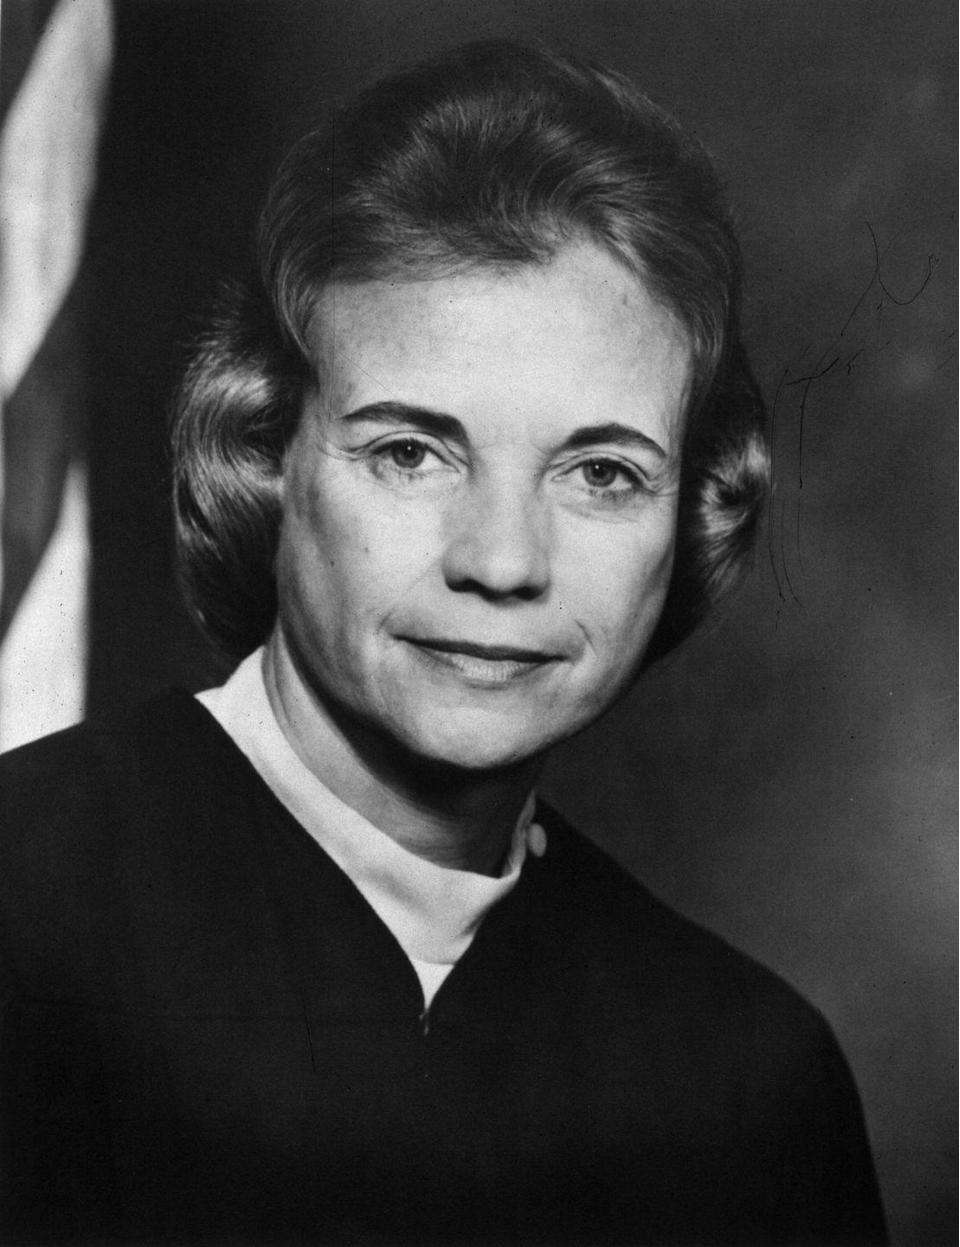 <p>On September 21, 1981 Sandra Day O'Connor was appointed by the U.S. Senate as the first female supreme court justice. This event was memorable on many levels, considering it had never happened before and laid the groundwork for future justices, like Ruth Bader Ginsburg and Sonia Sotomayor. </p>